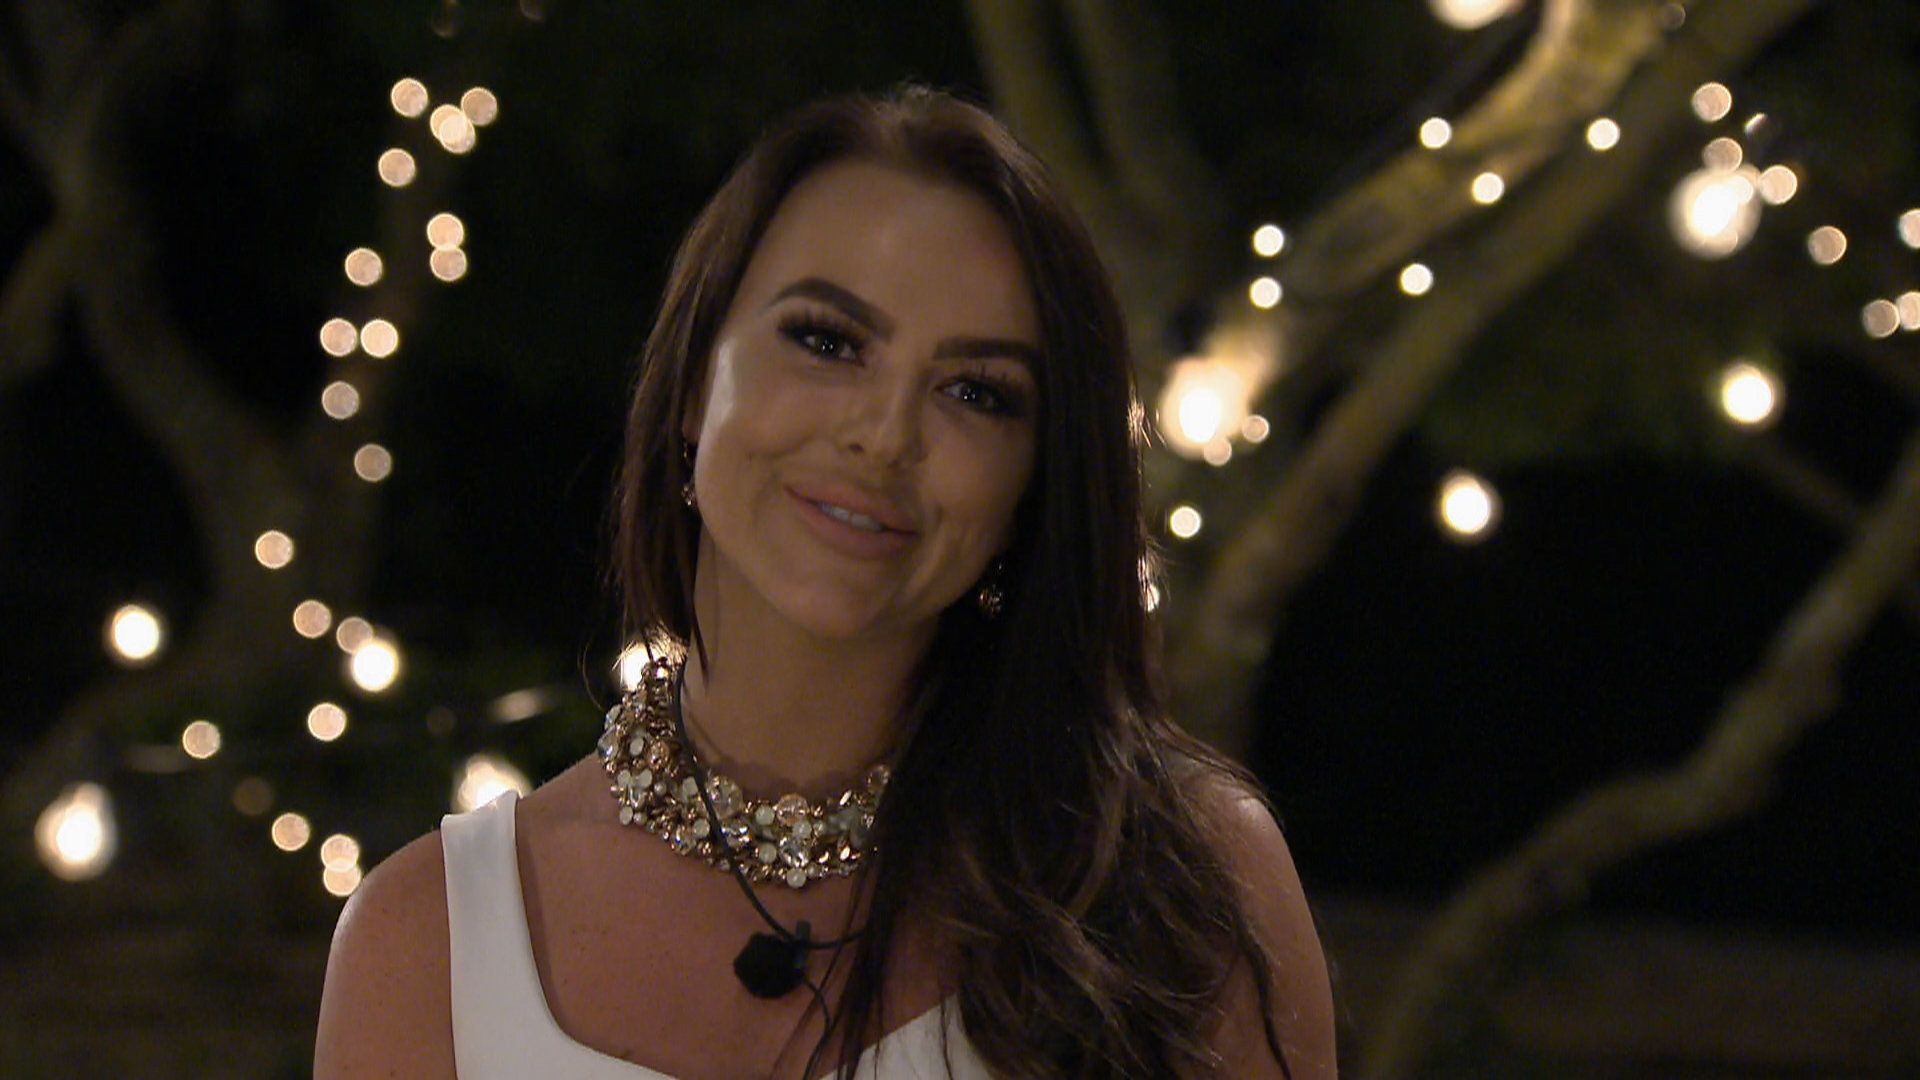 Love Island's Rosie Didn't Have A Kind Word To Say About Adam As She Left The Villa